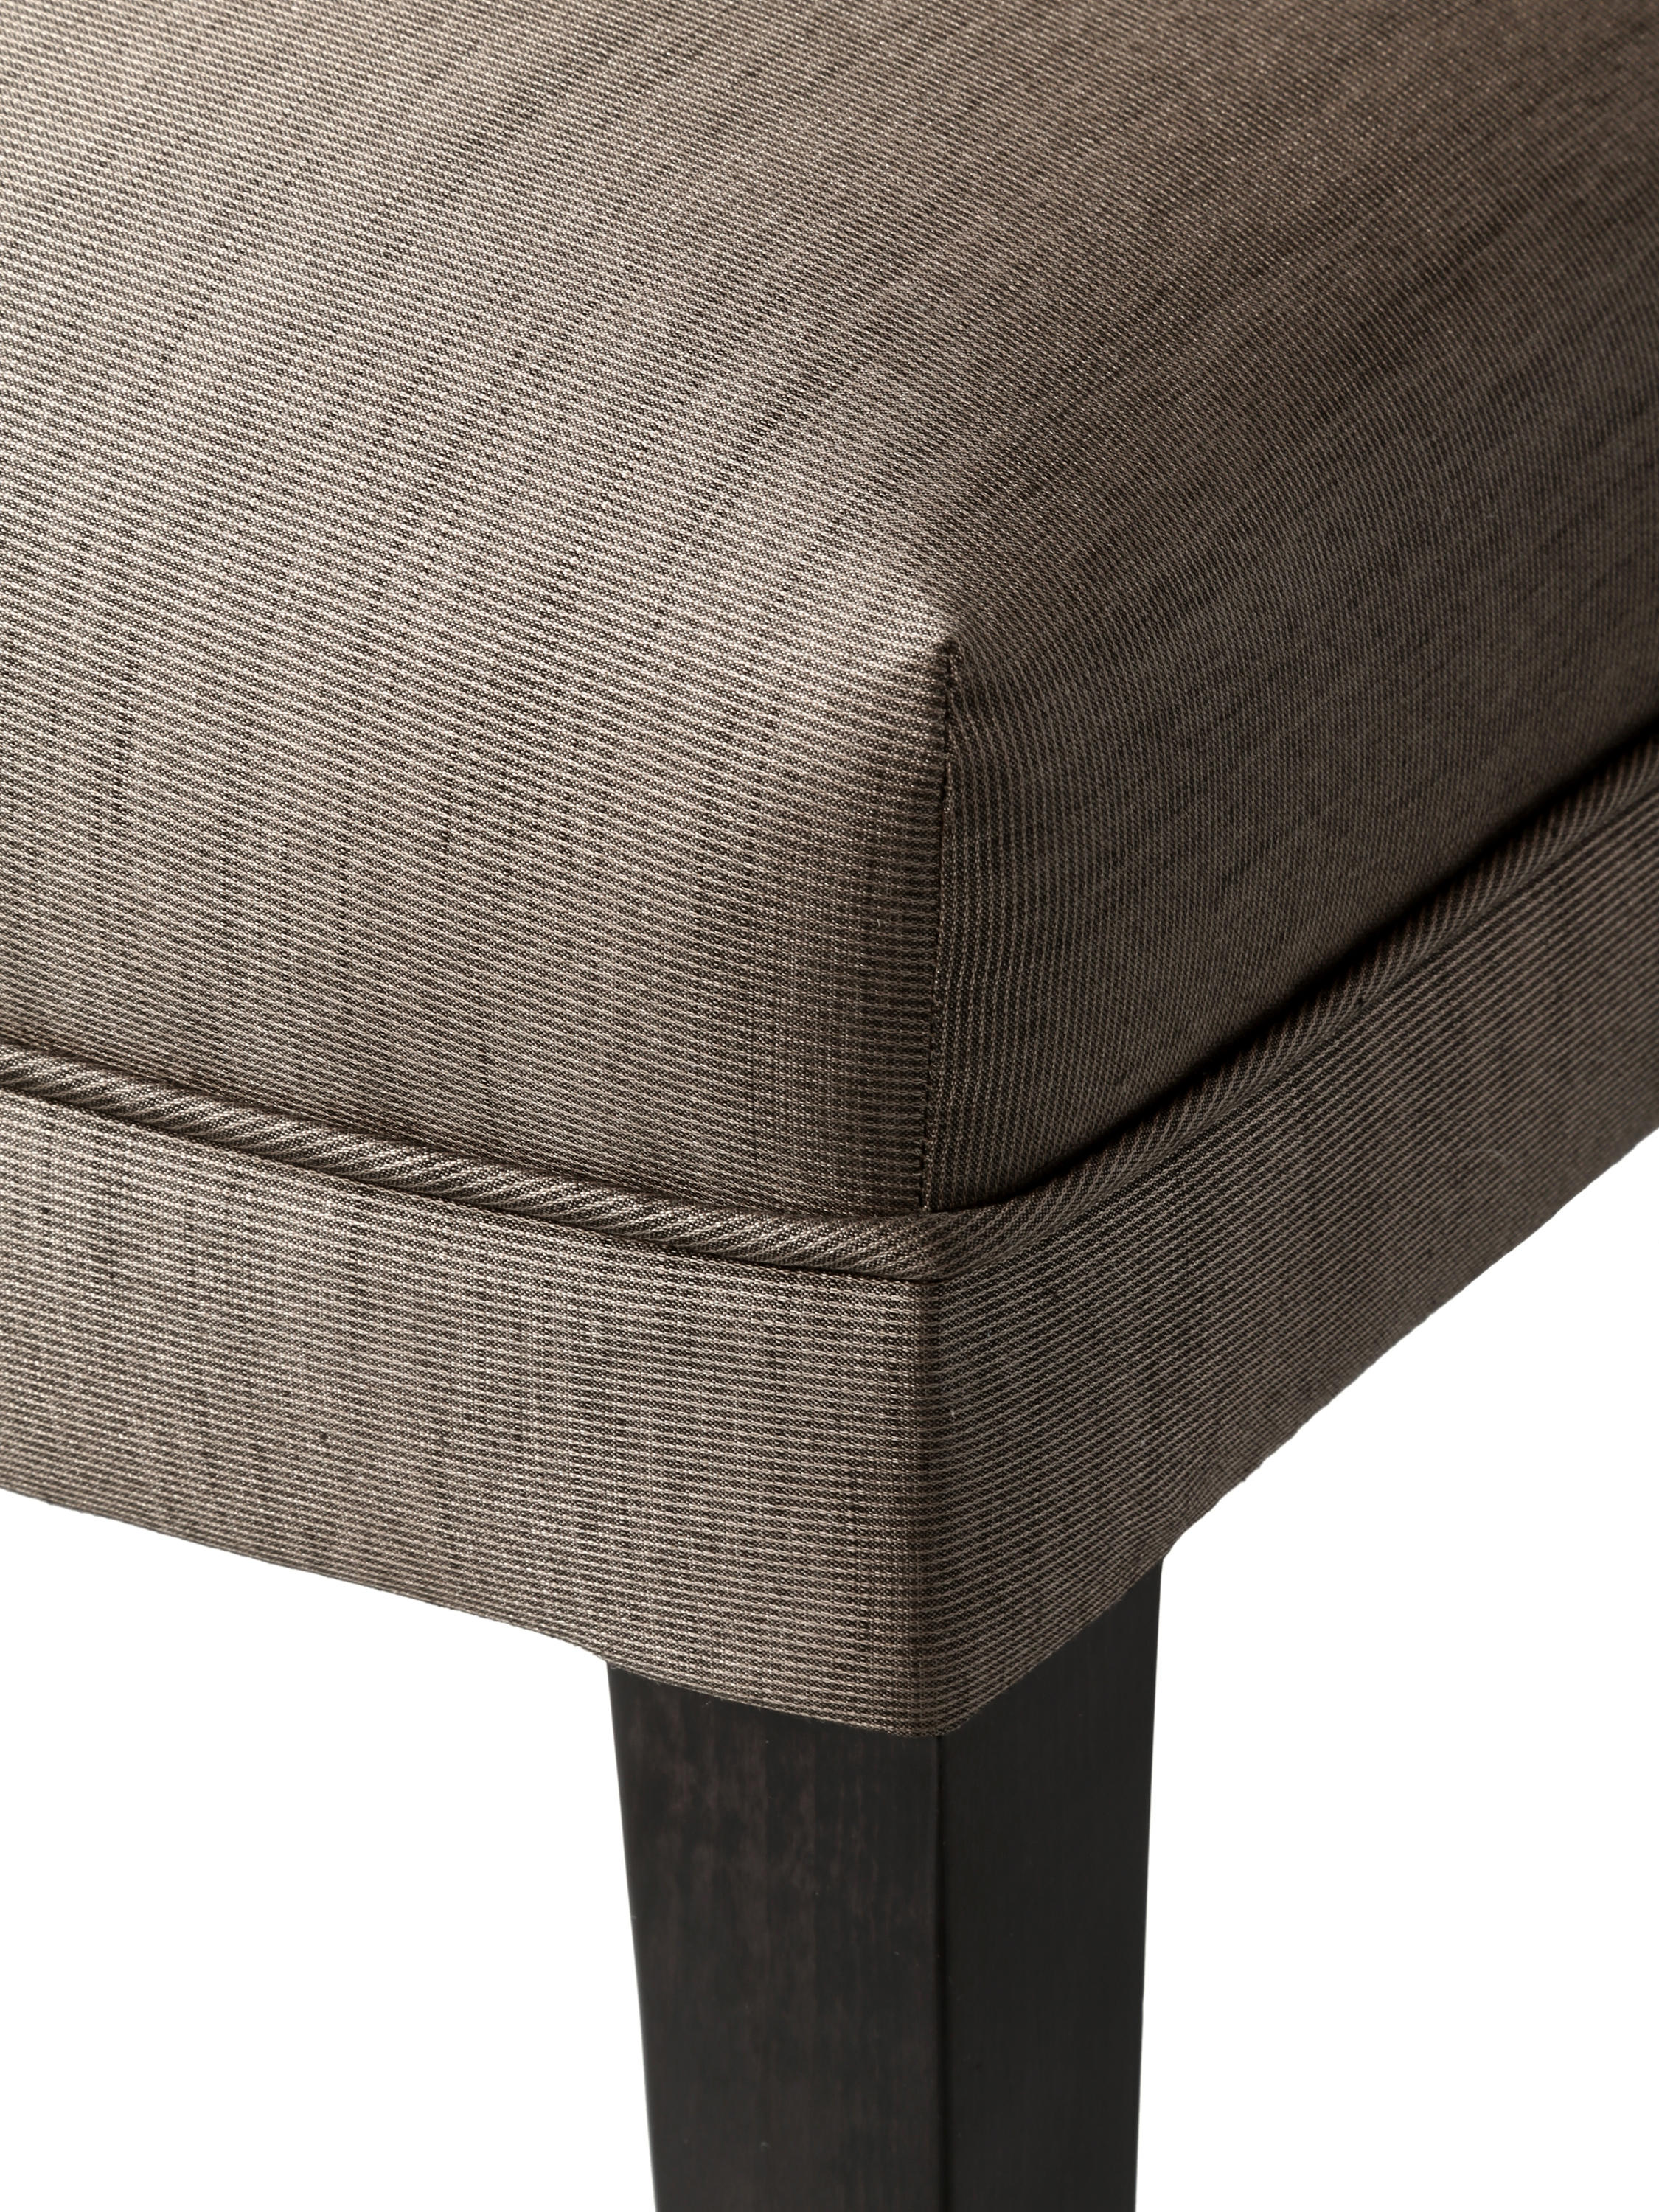 PARIS DINING CHAIR - Restaurant chairs from The Sofa & Chair ...